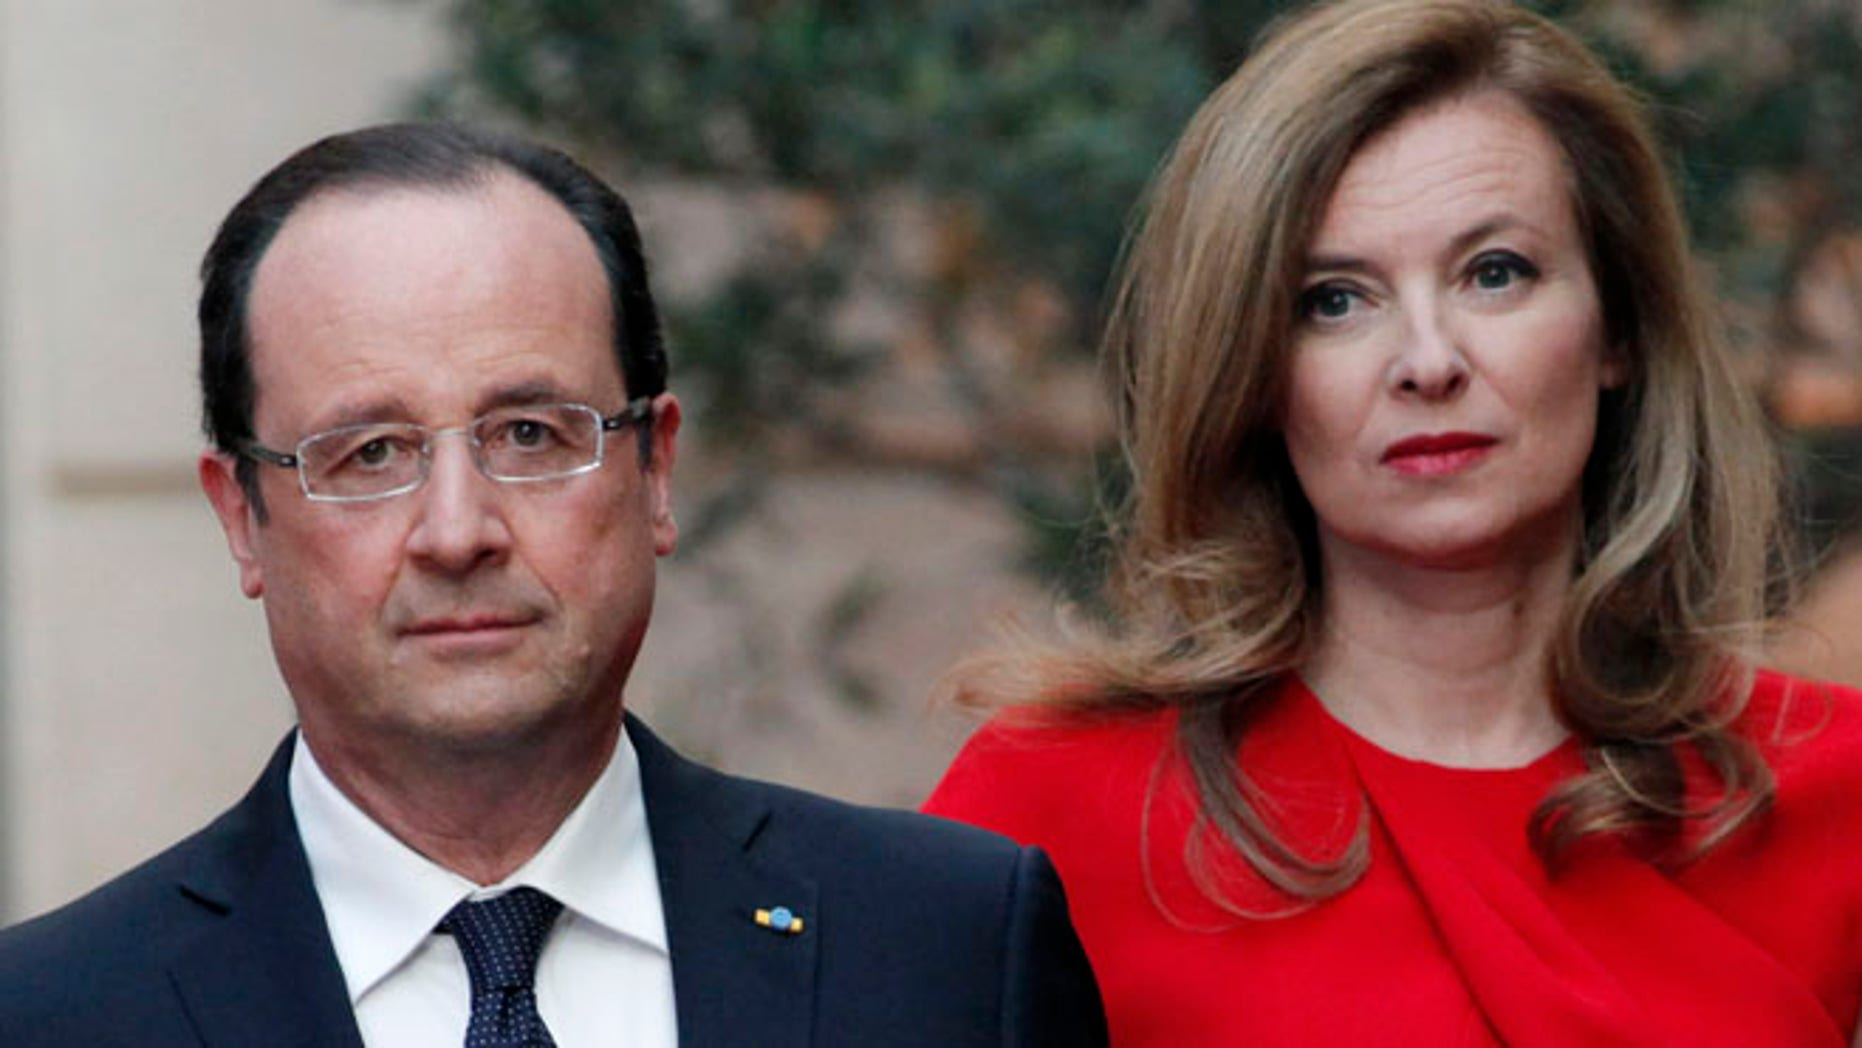 May. 7, 2013: In this file photo, French President Francois Hollande, left, and his companion Valerie Trierweiler arrive for a state dinner at the Elysee Palace, in Paris as part of Polish President Bronislaw Komorowski's two-day visit to France.